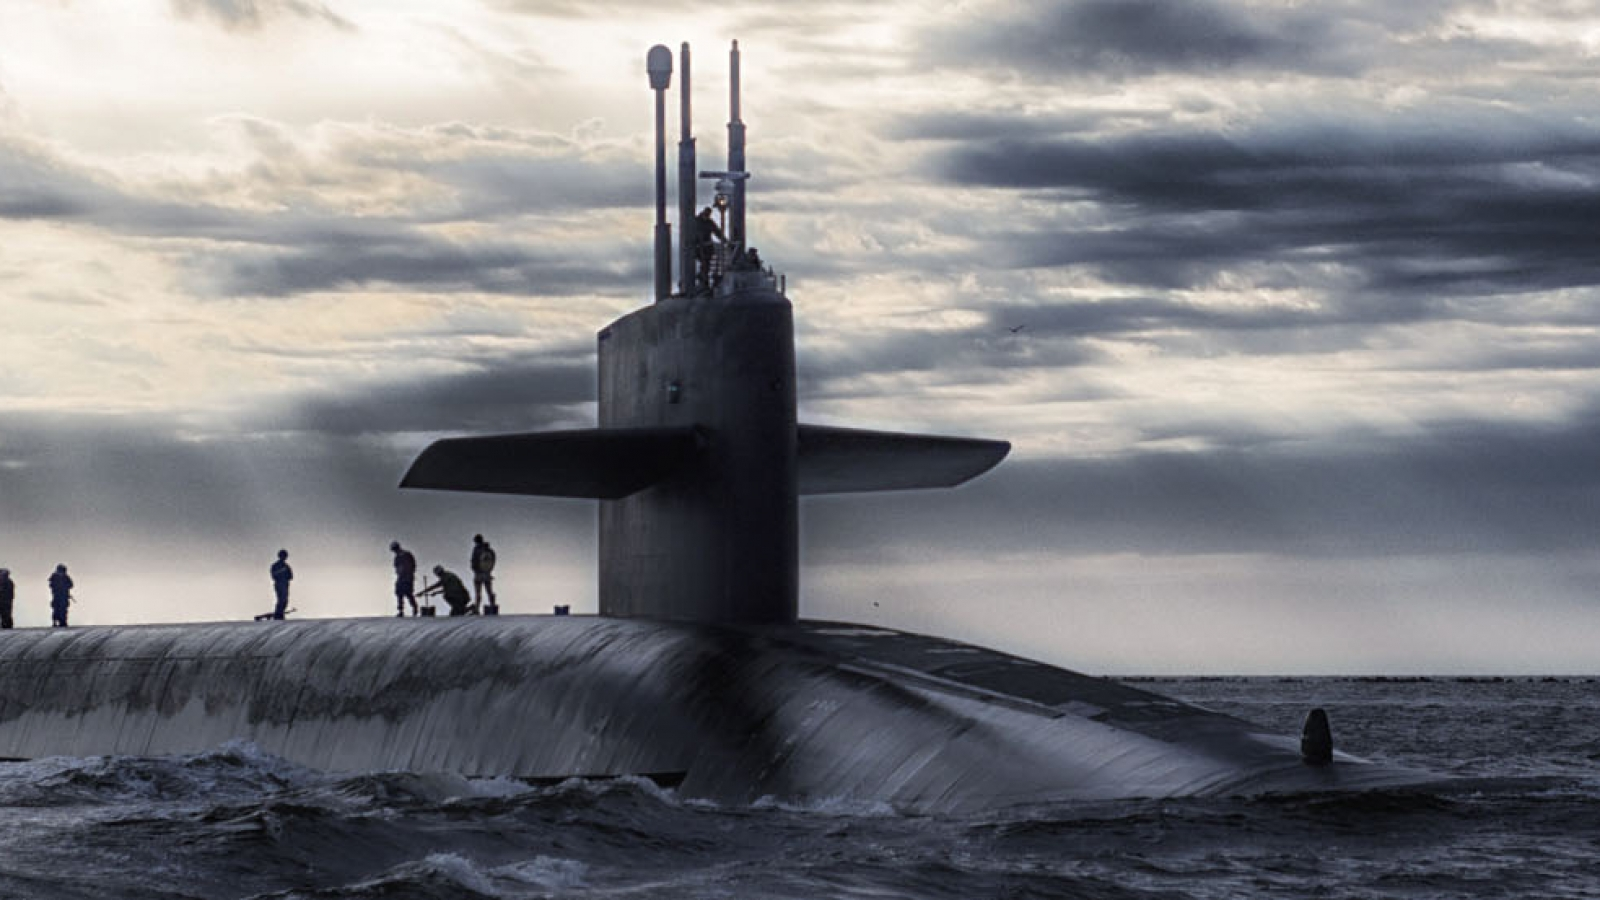 submarine-boat-sea-ocean-67575_header